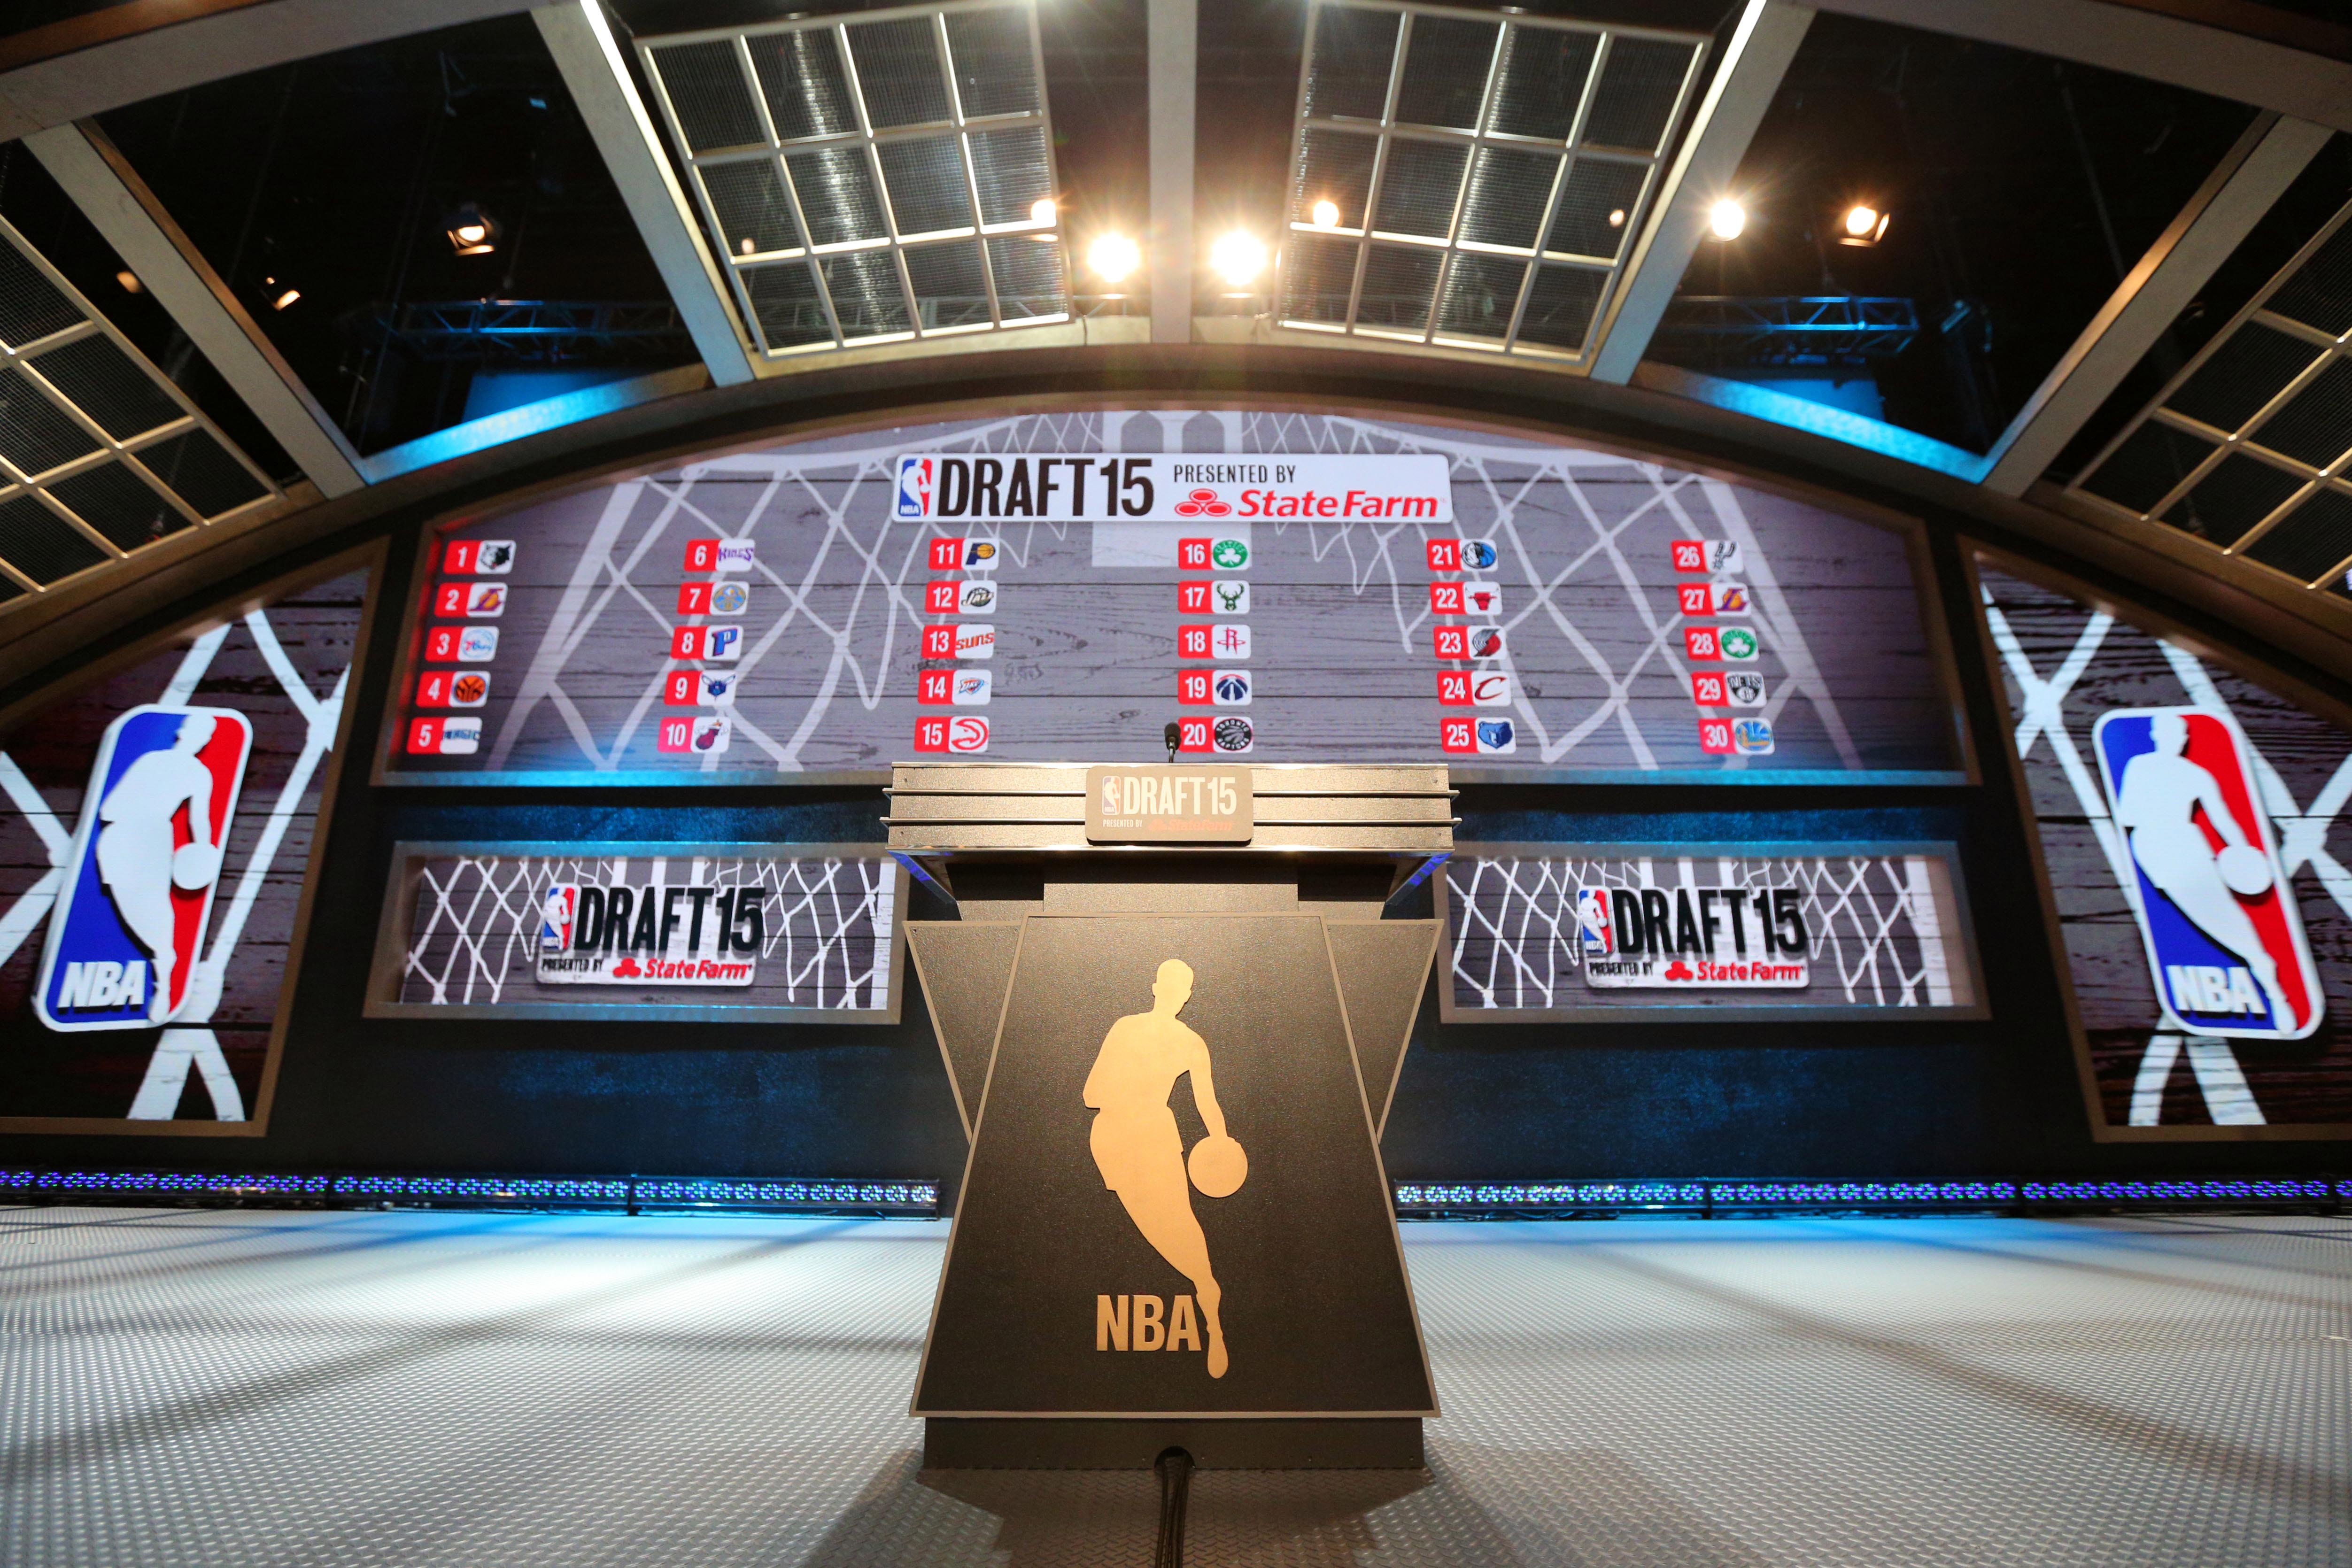 Jun 25, 2015; Brooklyn, NY, USA; General view of the stage before the start of the 2015 NBA Draft at Barclays Center. Mandatory Credit: Brad Penner-USA TODAY Sports ORG XMIT: USATSI-225610 ORIG FILE ID:  20150625_pjc_ae5_083.JPG